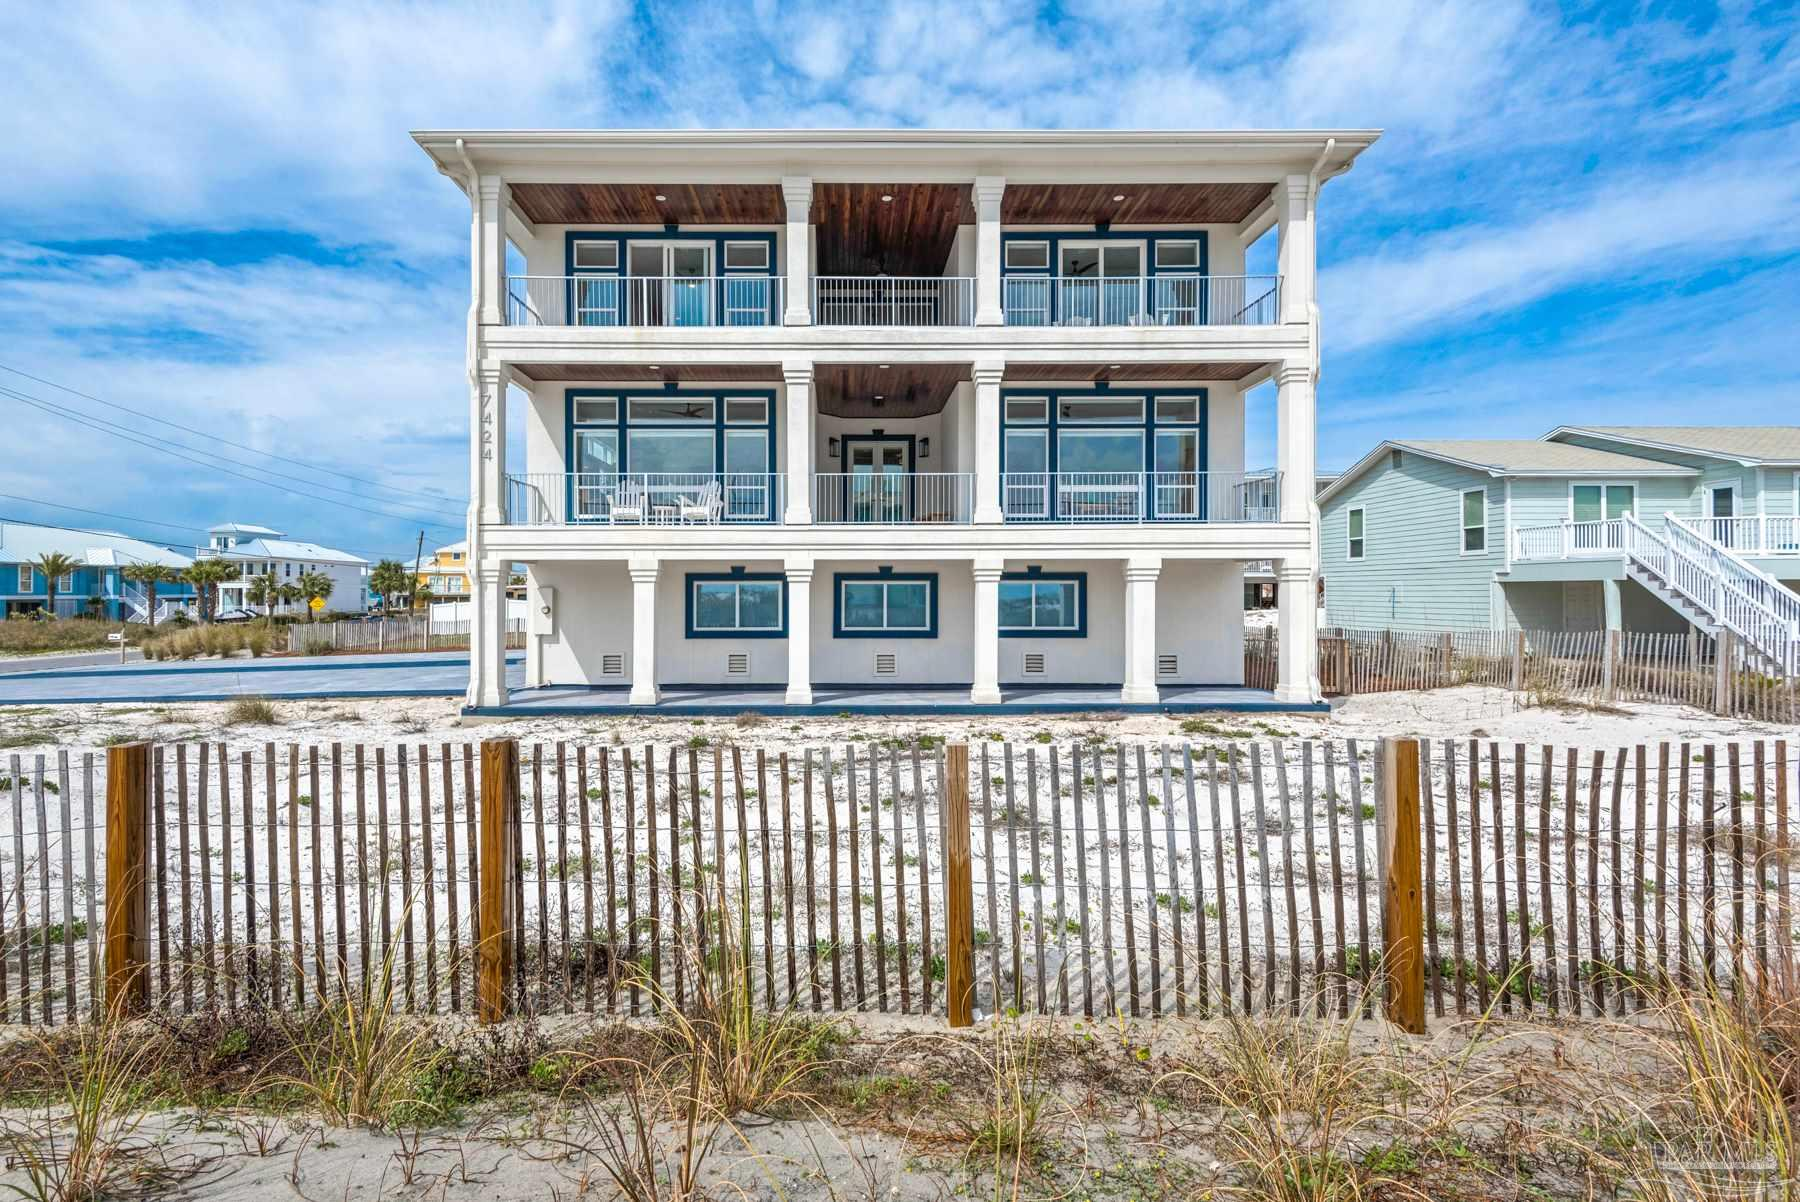 """This one of a kind luxury home is located on Navarre Beach on the beautiful white sands of Santa Rosa Island.  This up and coming location has been Florida's best kept secret, but word is getting out and plans are in the works that makes Navarre Beach the place to be! The grandeur of this newly renovated home boasts all the sophisticated luxury you are looking for.  With water views from every window, and an unobstructed South water view, you can watch dolphins play on the gulf side from the sitting room with extra large windows, or catch amazing sunsets from any of the covered or uncovered porches.  This home has been equipped with so many extras.  The incredible 24""""x24"""" Italian Marble floor on the main level, and this kitchen would make an executive chef envious.  With top of the line appliances, Natural Quartzite on the 9' island and countertops and the open floor plan, cooking in this kitchen is a pleasure.  With so much to see and admire, don't forget to look up at the marvelous custom made chandelier that is the star of the living area,  a wench was installed for ease of maintenance. There are two bedrooms that could serve as the master bedroom, one on each floor.  There is an additional 3rd bedroom with an en suite.  Some not so obvious extras are the porch's custom solid aluminum rails with automotive finish, whole house water purification system, air scrubbers attached to both AC units for air purification, three water heaters, whole house surge protectors, the list goes on and on.  All of this on a large lot with room for a pool, a quick and easy 100 yard walk to the pristine white sand beaches and just 500 yards to the award winning Gulf Island National Seashore. Call today to make your appointment to see this spectacular property! Be sure to click on the first Virtual Tour and """"walk through"""" this home with the convenience of the matter port virtual tour."""